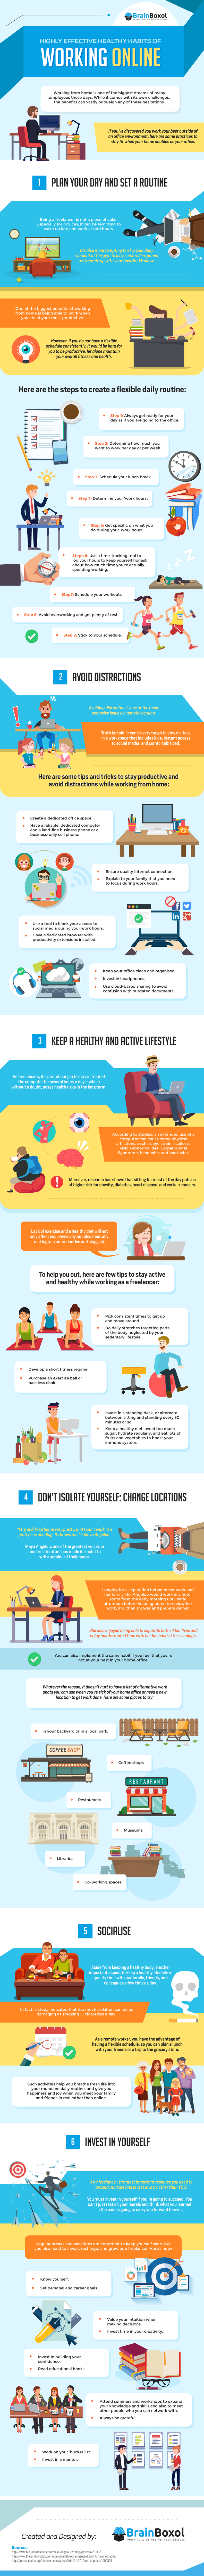 How to Build Healthy Habits When Working from Home - Infographic